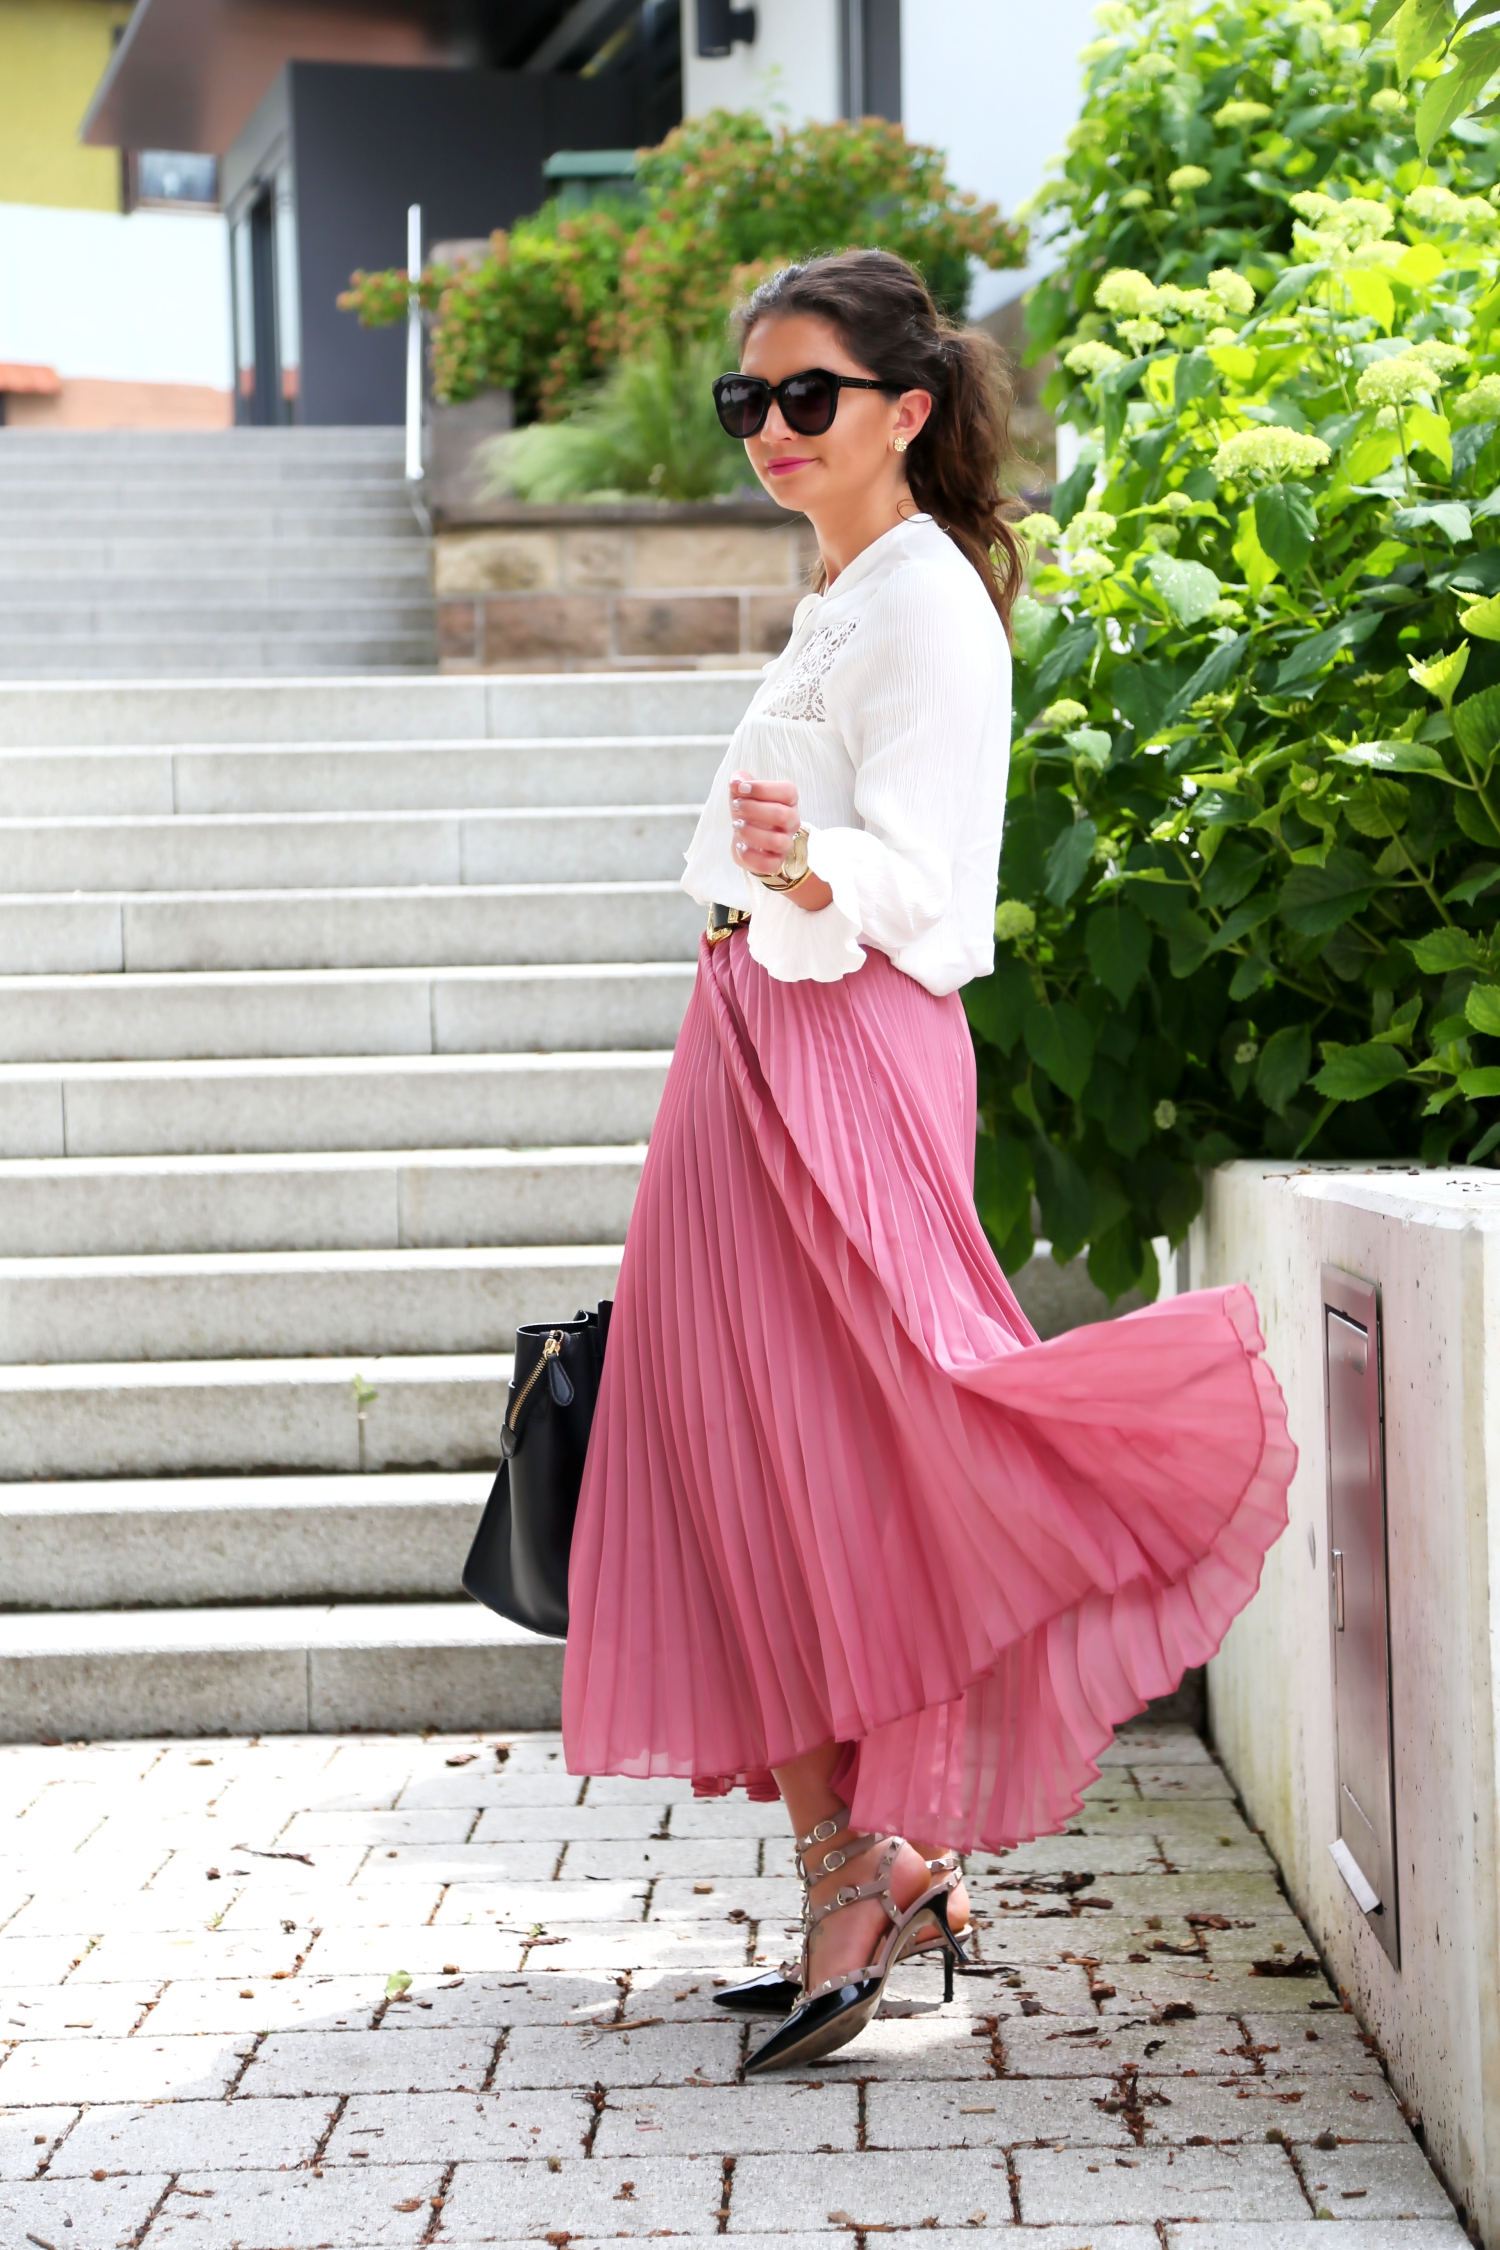 outfit-pleated-skirt-white-blouse-kitten-heels-valentino-garavani-rockstuds-celine-bag-luggage